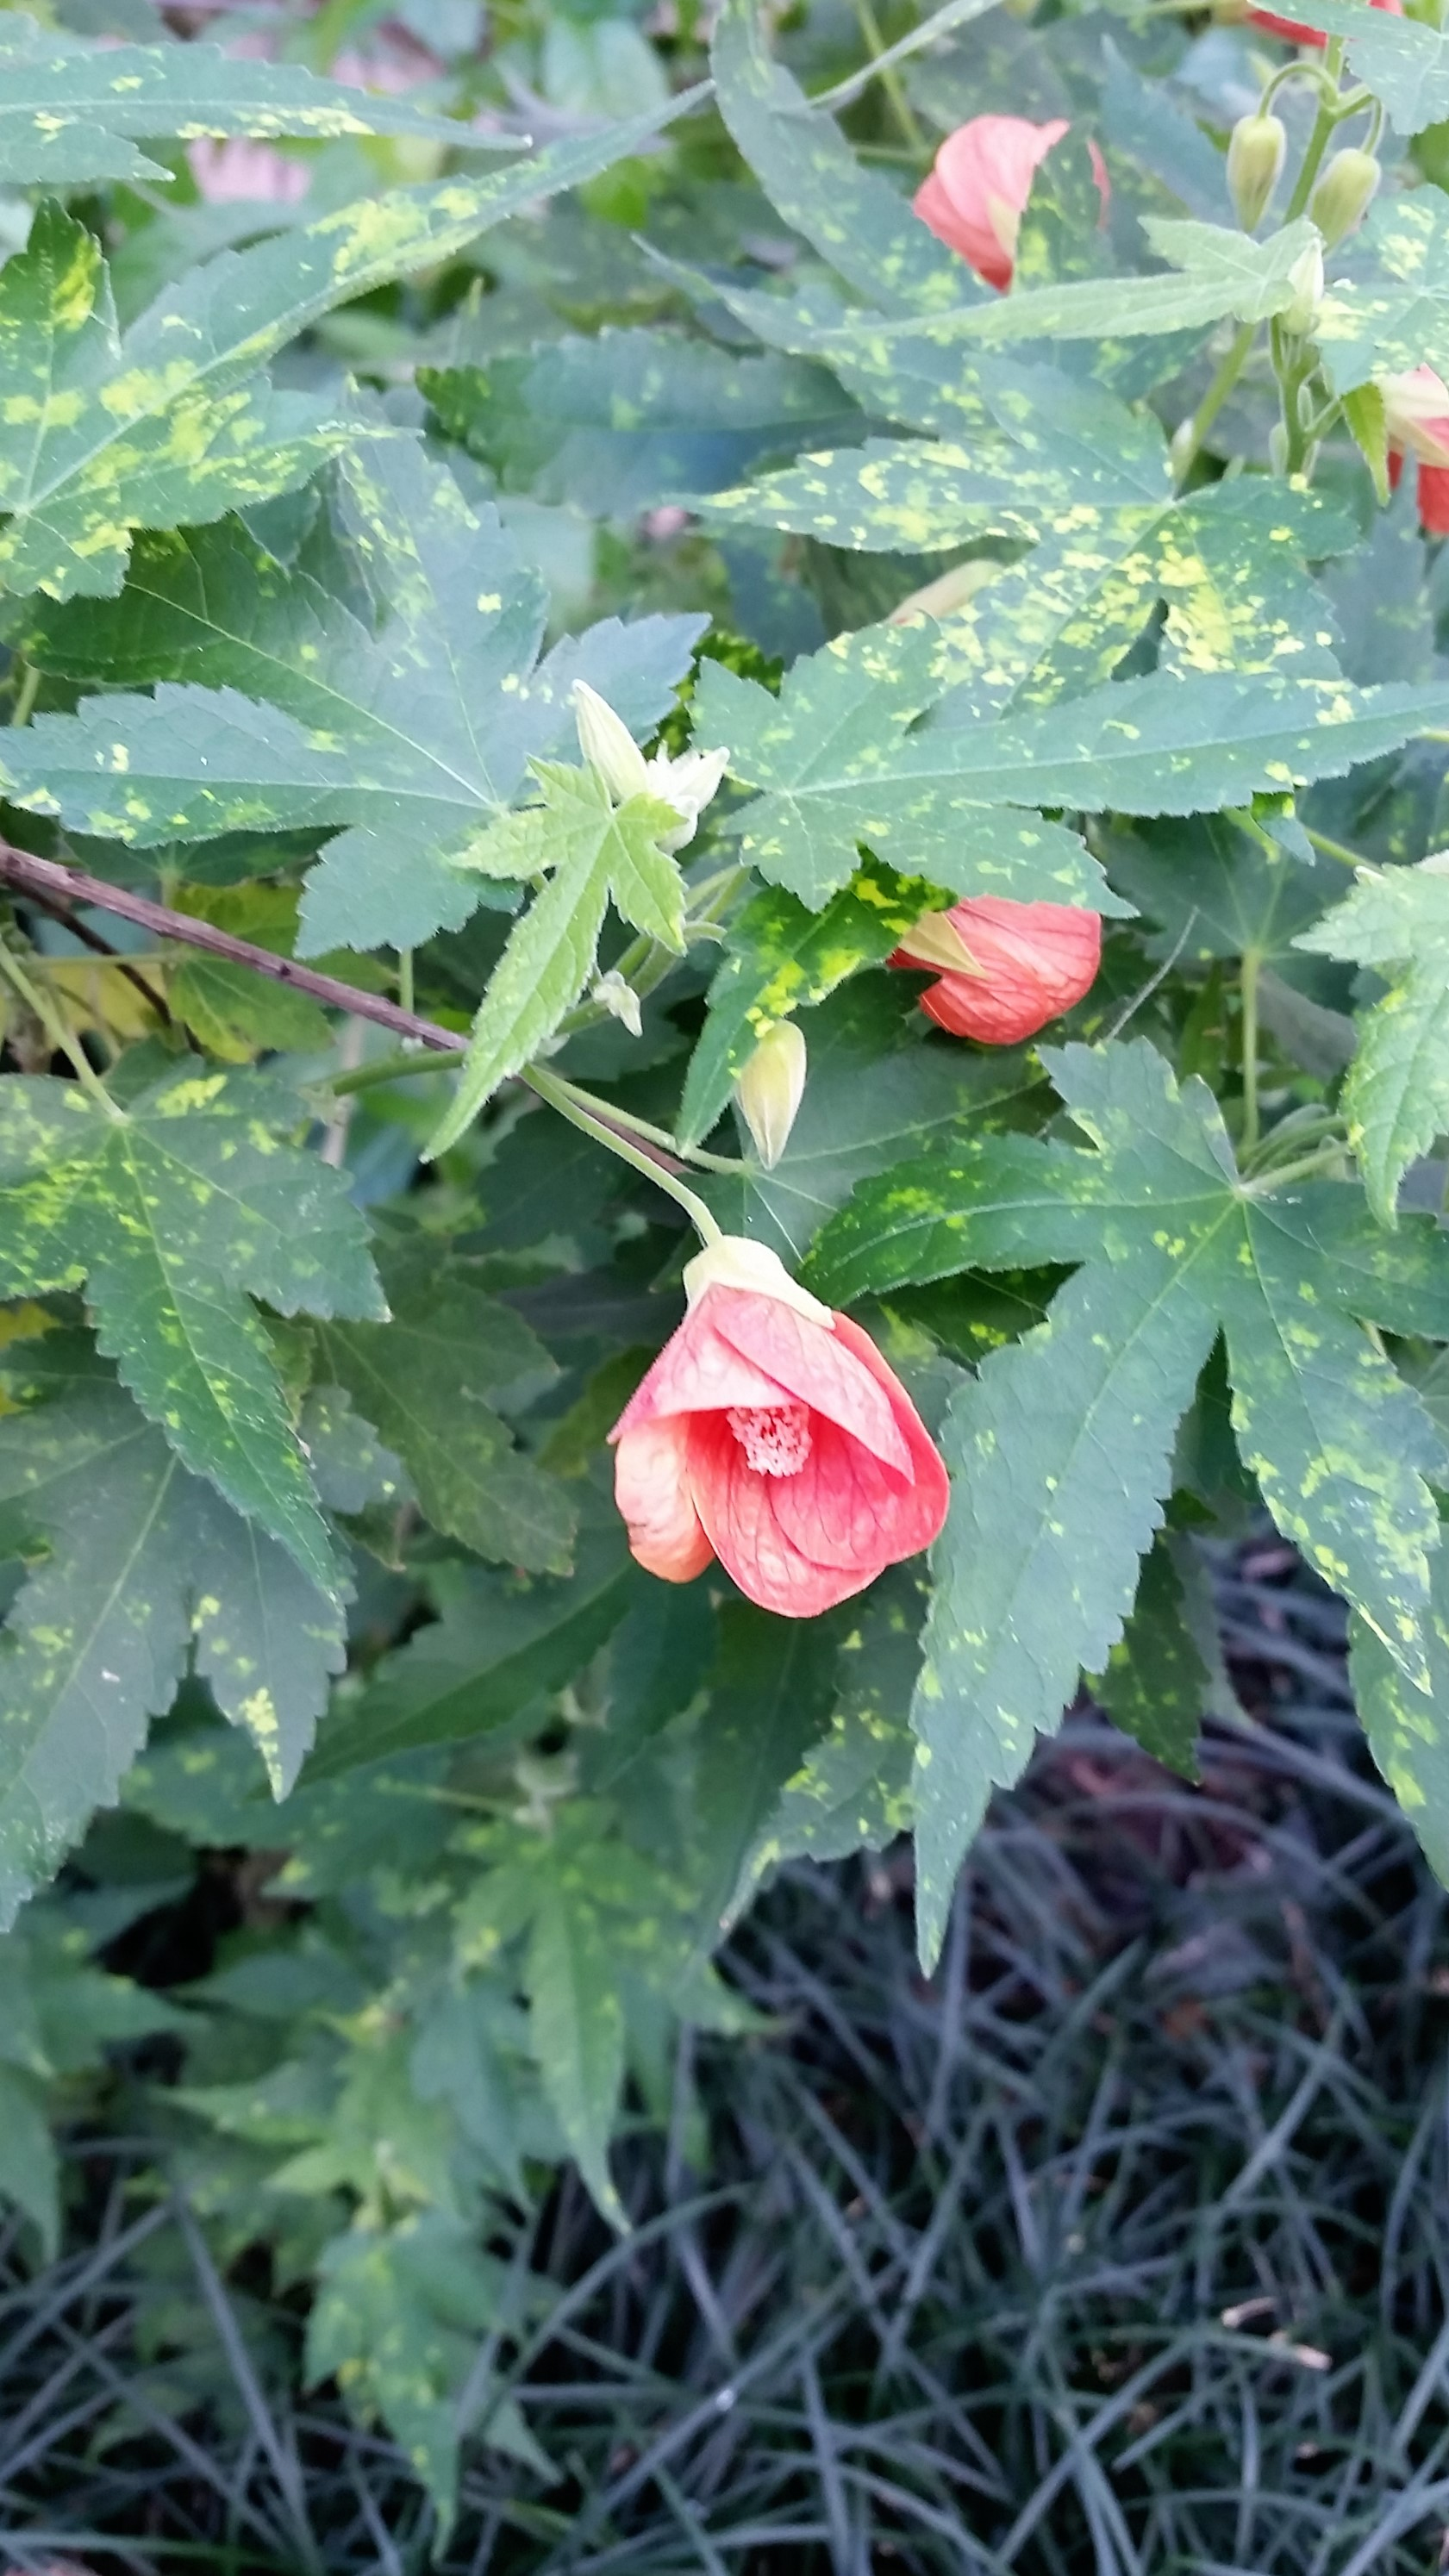 I Believe I Might Be Collecting Abutilons – Influences of ... on shade perennials, back garden designs, landscape designs, sculpture garden designs, shady garden designs, potager garden designs, enclosed garden designs, butterfly garden designs, mary garden designs, green wall designs, container garden designs, formal garden designs, drought tolerant garden designs, shade plants, shade herbs, rock garden designs, shade gardens zone 5, shade flowers, tropical garden designs, cactus garden designs,